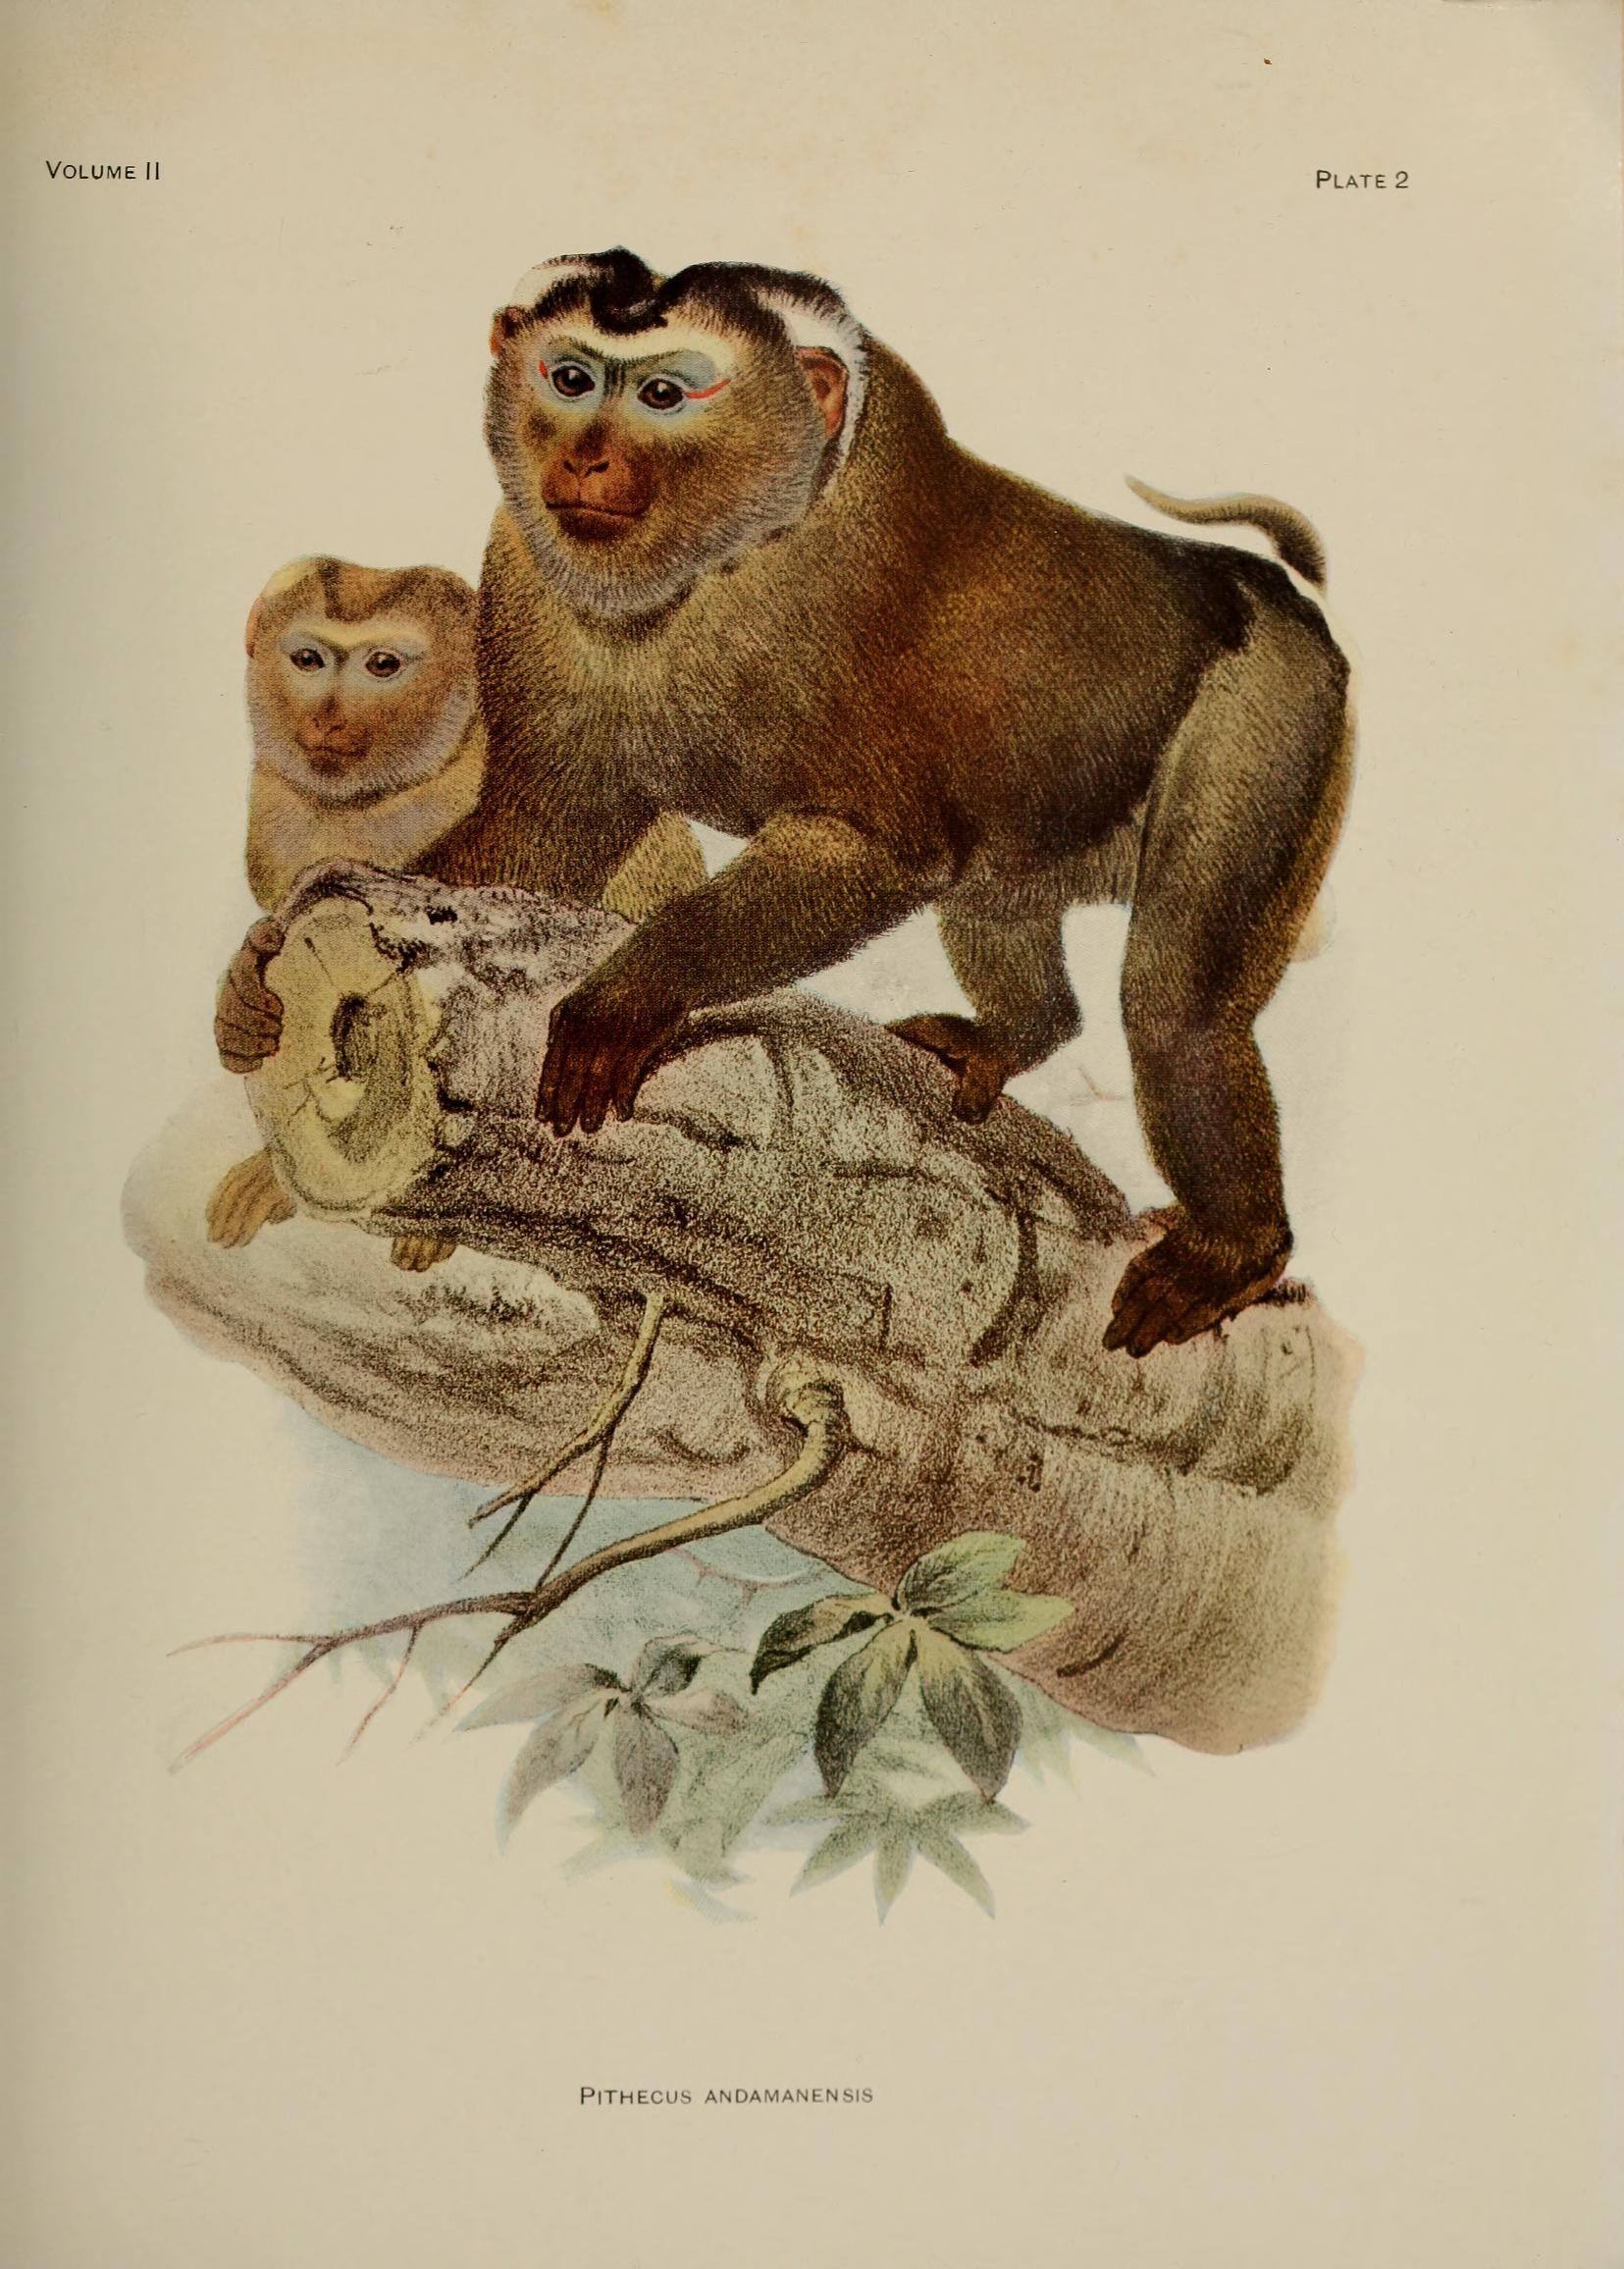 Pithecus andamanensis. A review of the Primates v.2 New